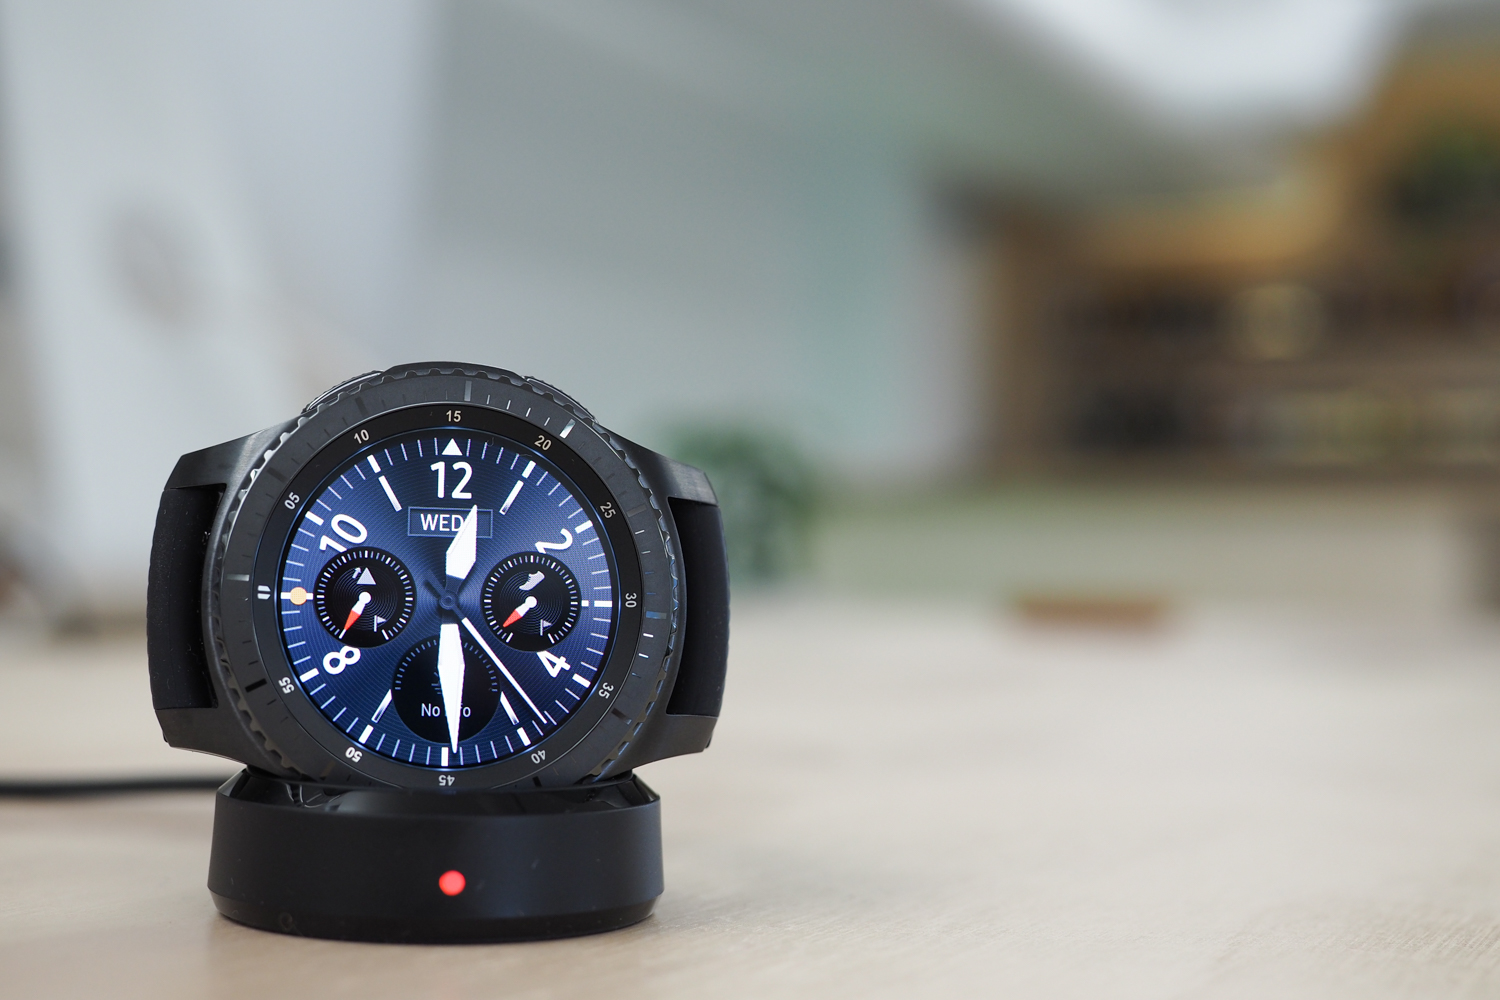 Samsung Gear S3 Frontier Review | A Modern Classic